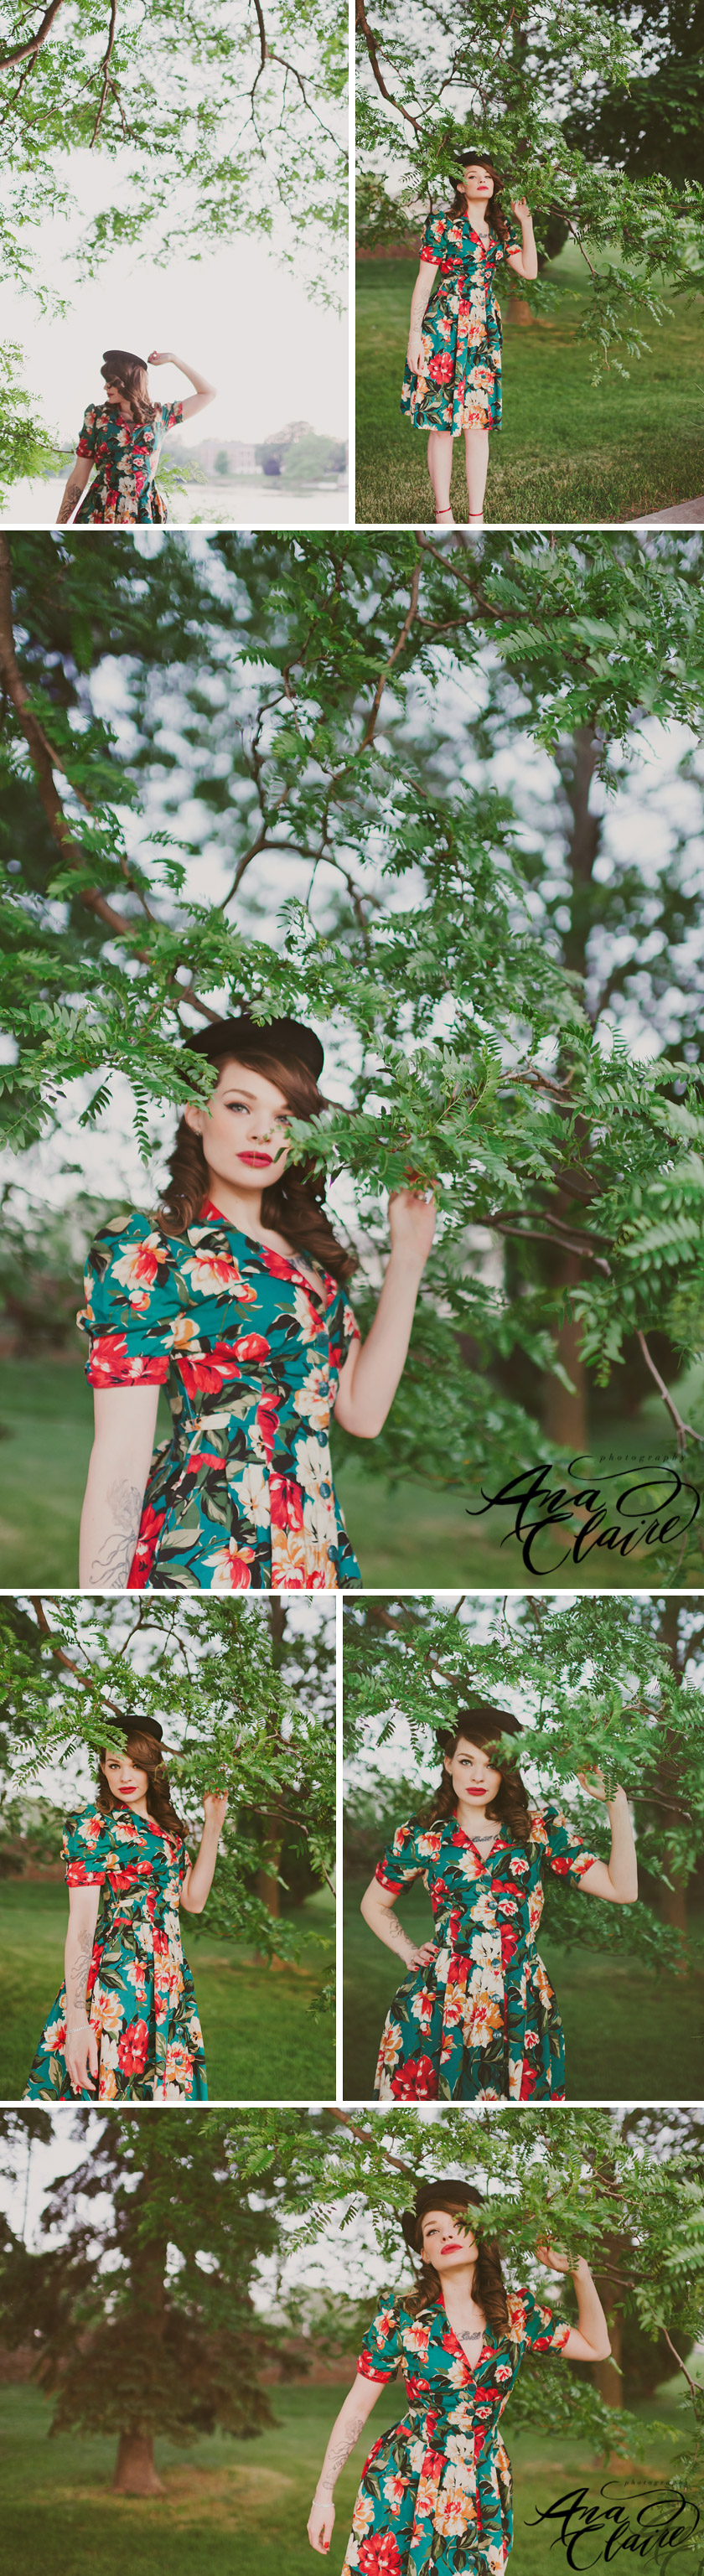 Green bay vintage shoot